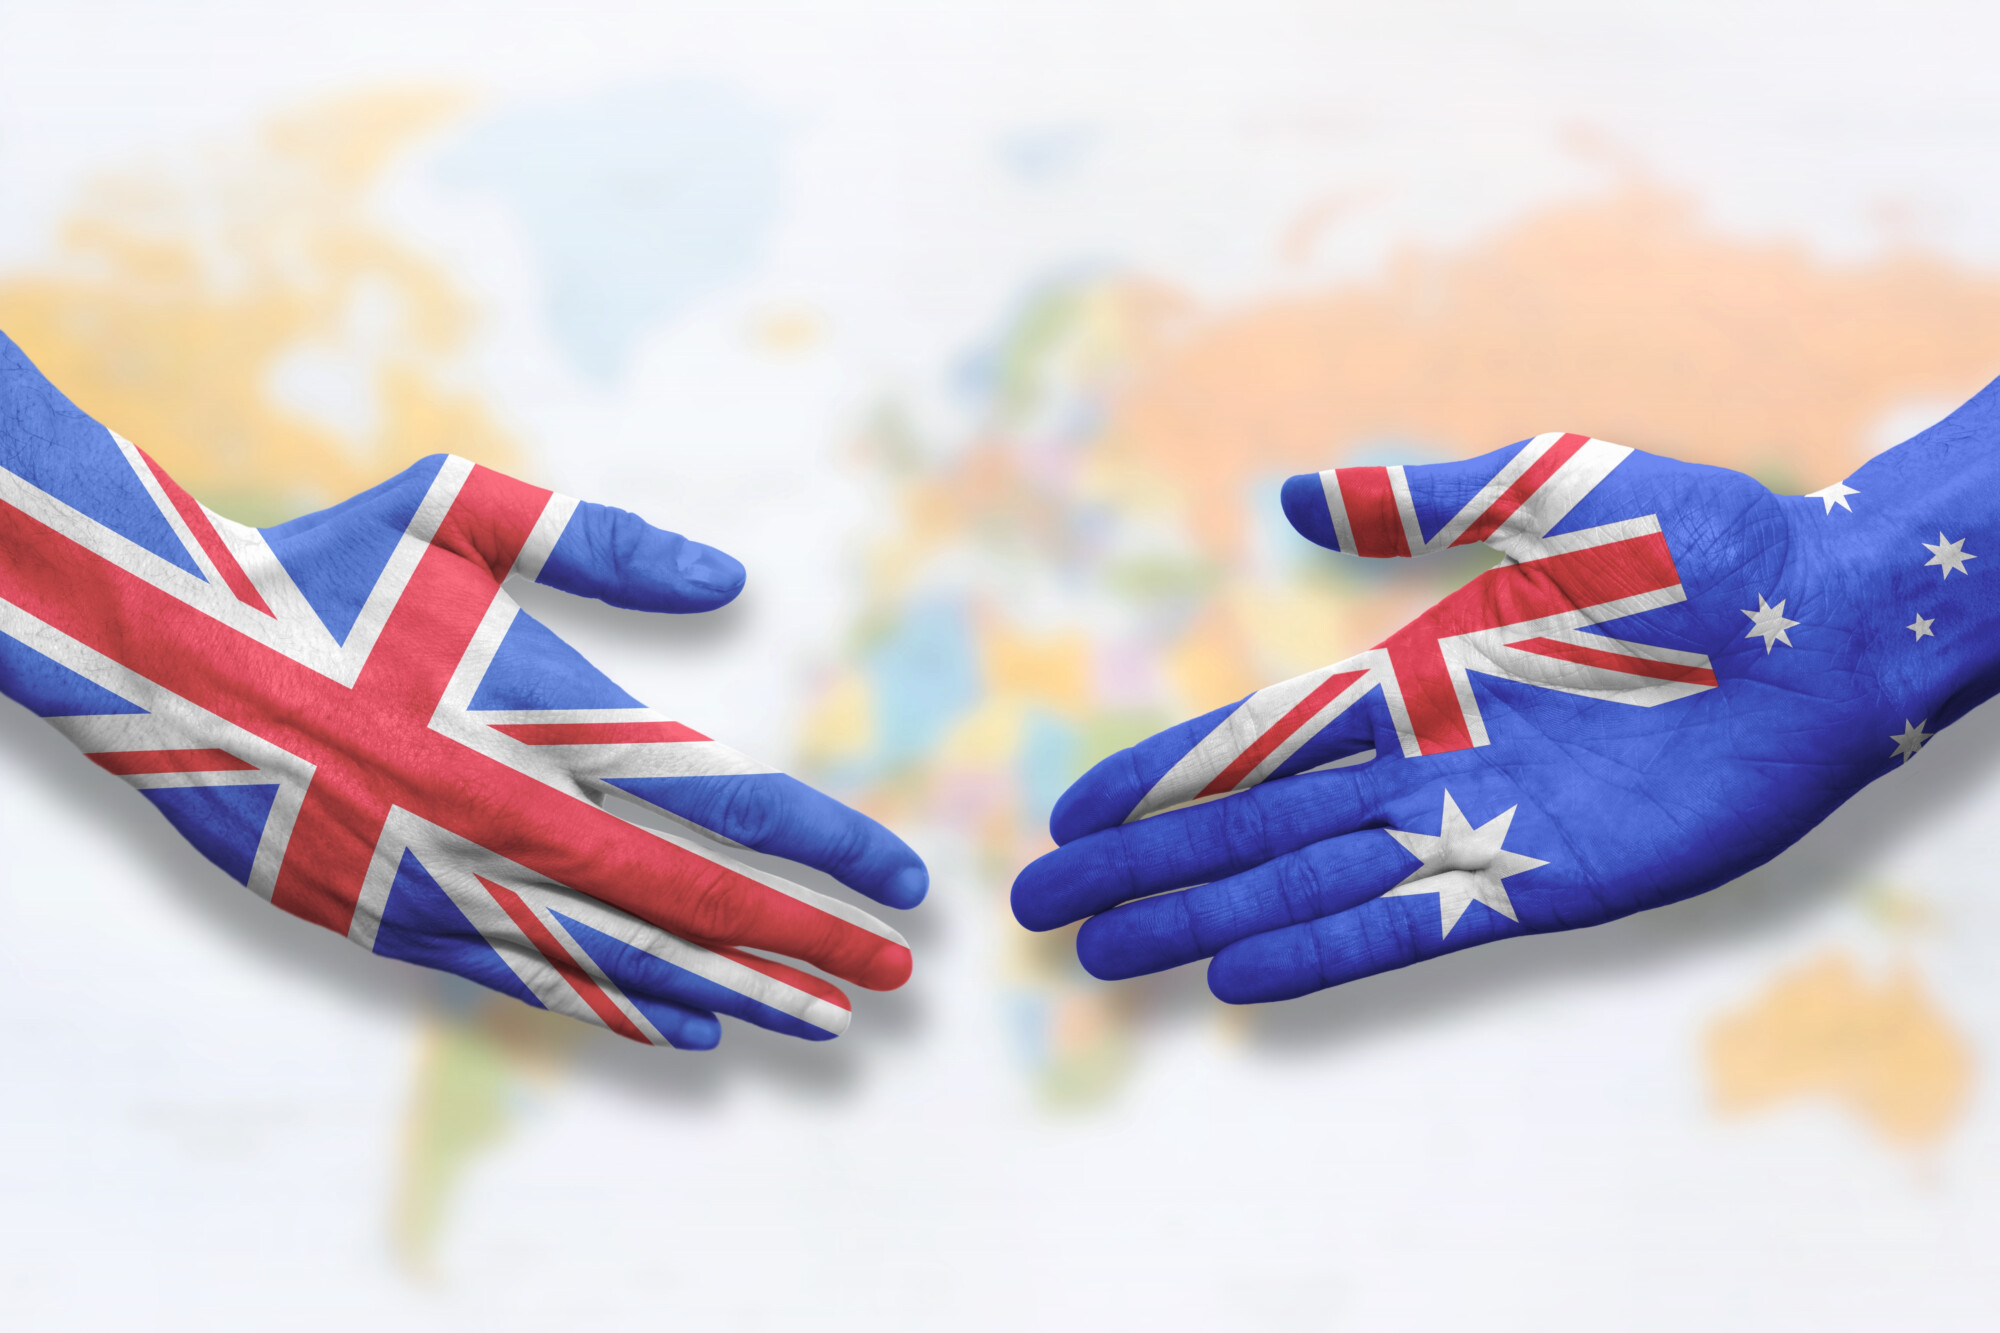 painted hands about to shake - one painted with a Great Britain flag and the other with an Australian flag representing the UK-Australia trade deal